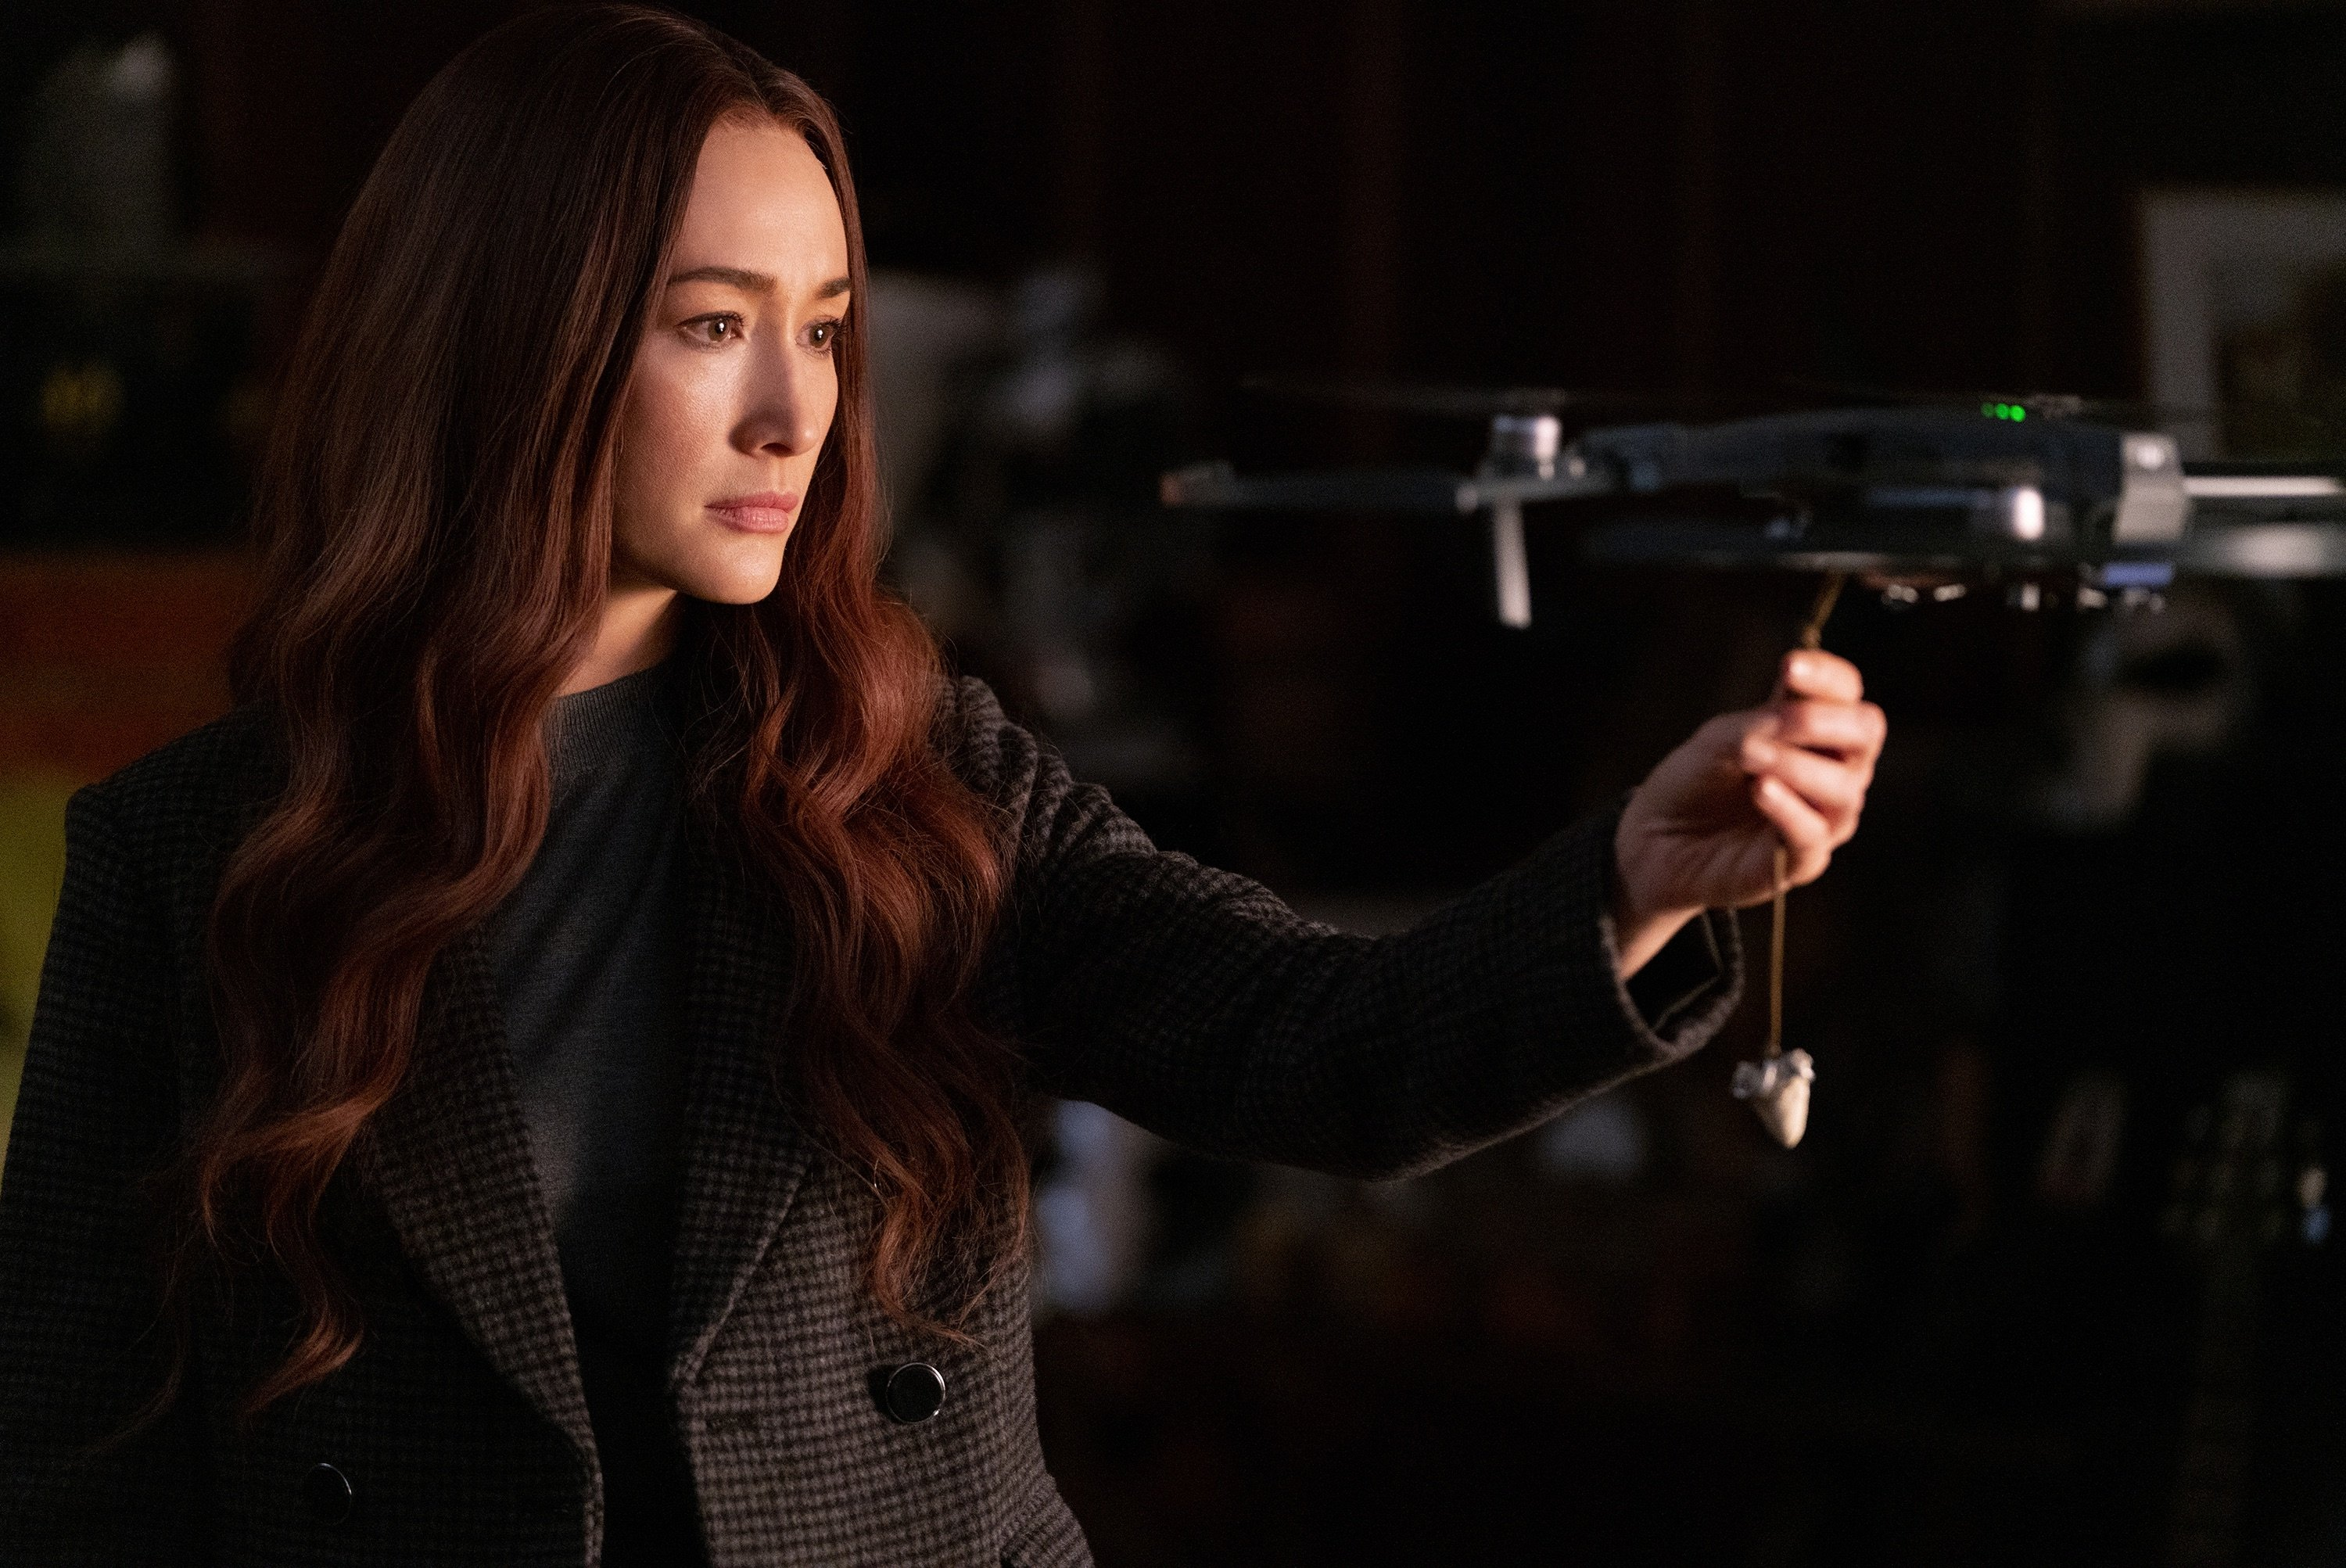 """Maggie Q as Anna, in a scene from the film """"The Protege."""" (Lionsgate via AP)"""